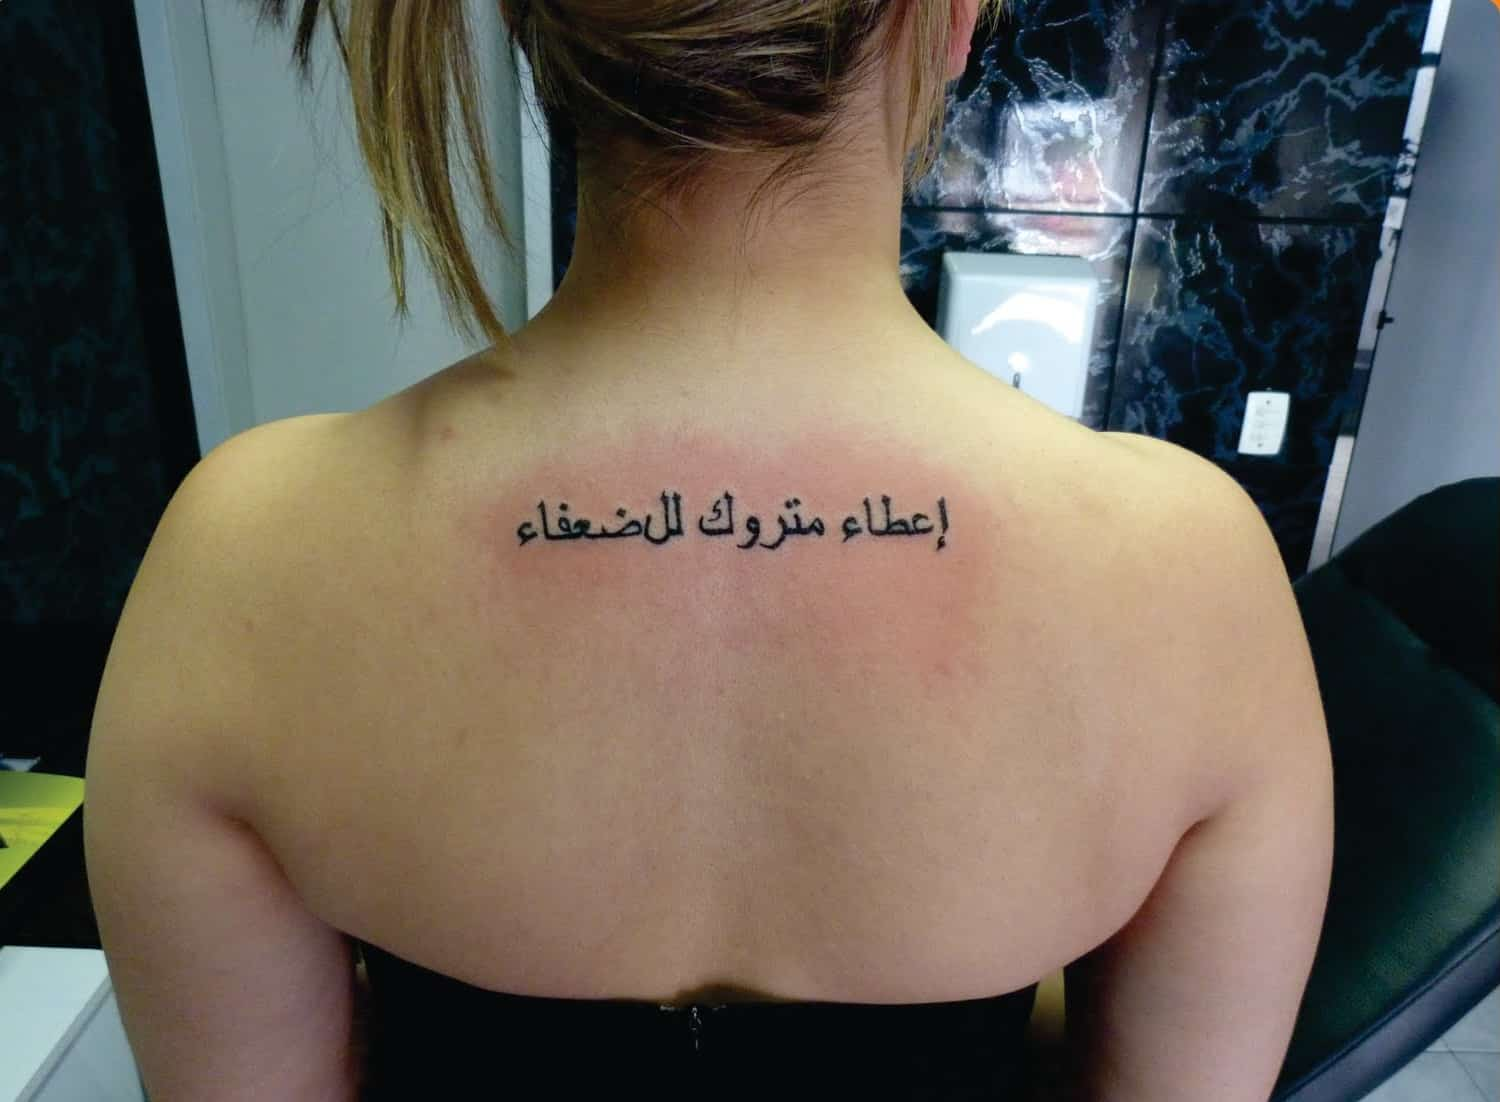 65 Cool Arabic Tattoos Ideas With Meanings And Pictures